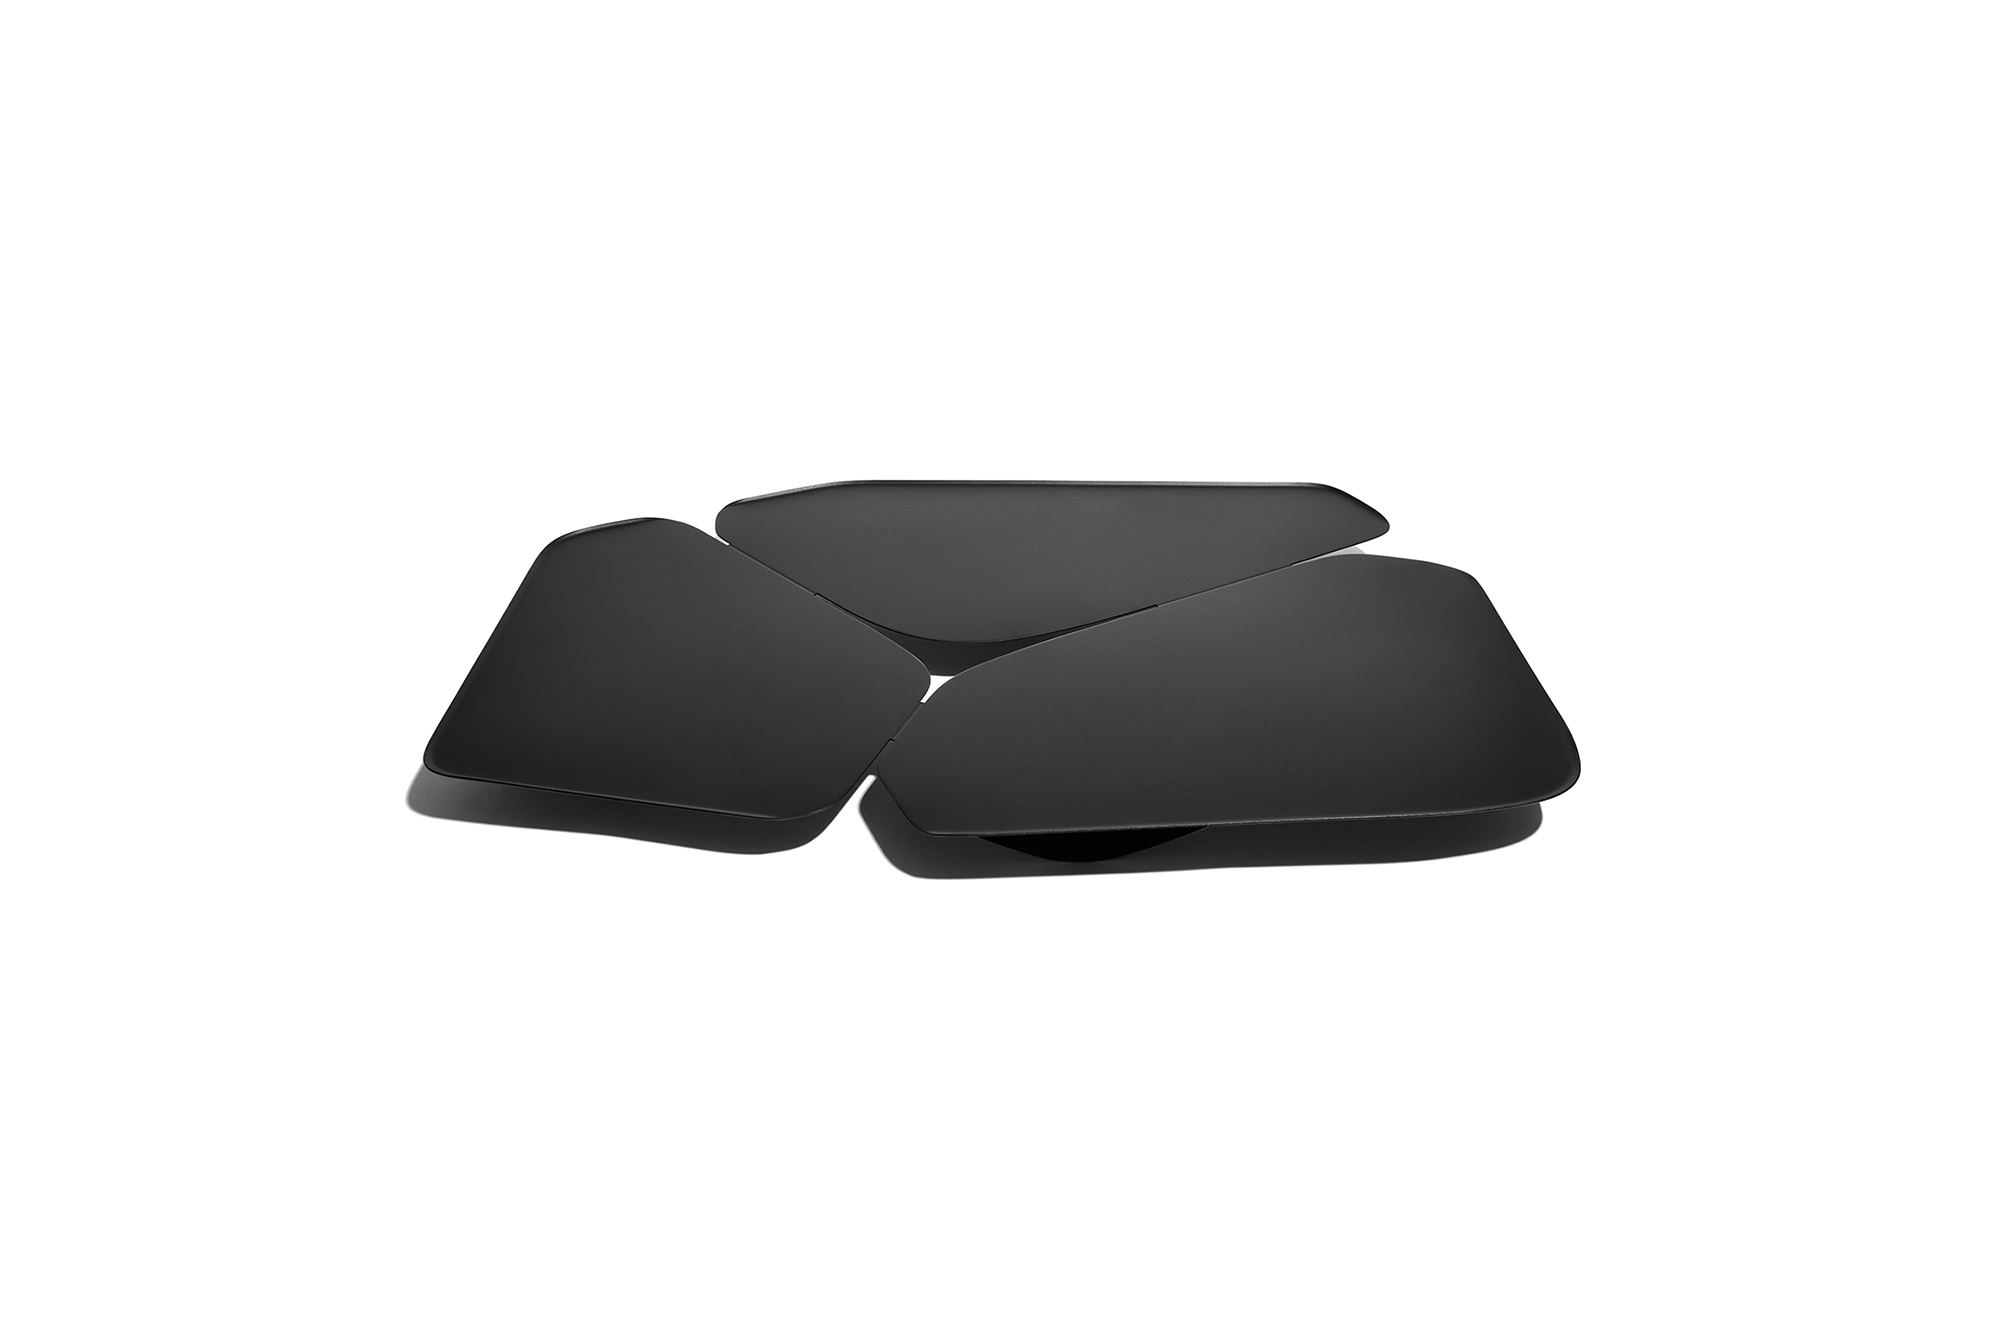 Hew Serving Tray